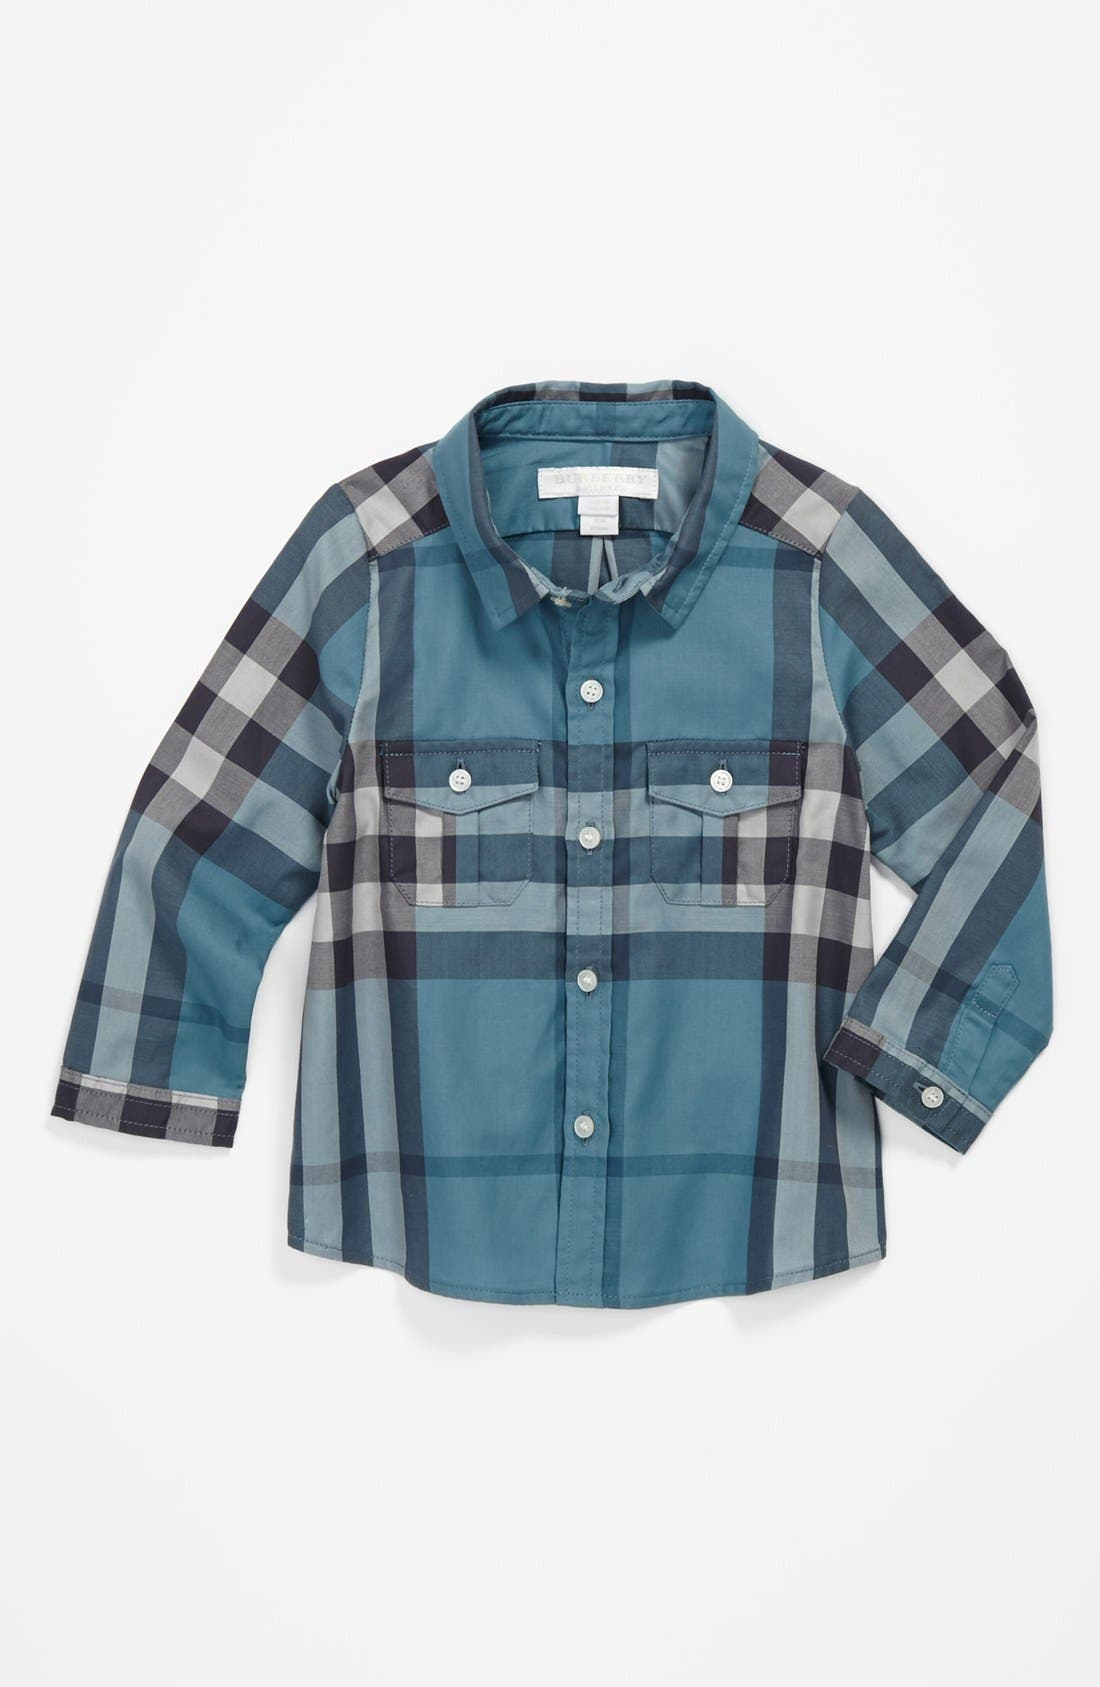 Alternate Image 1 Selected - Burberry 'Trent' Check Shirt (Baby Boys)